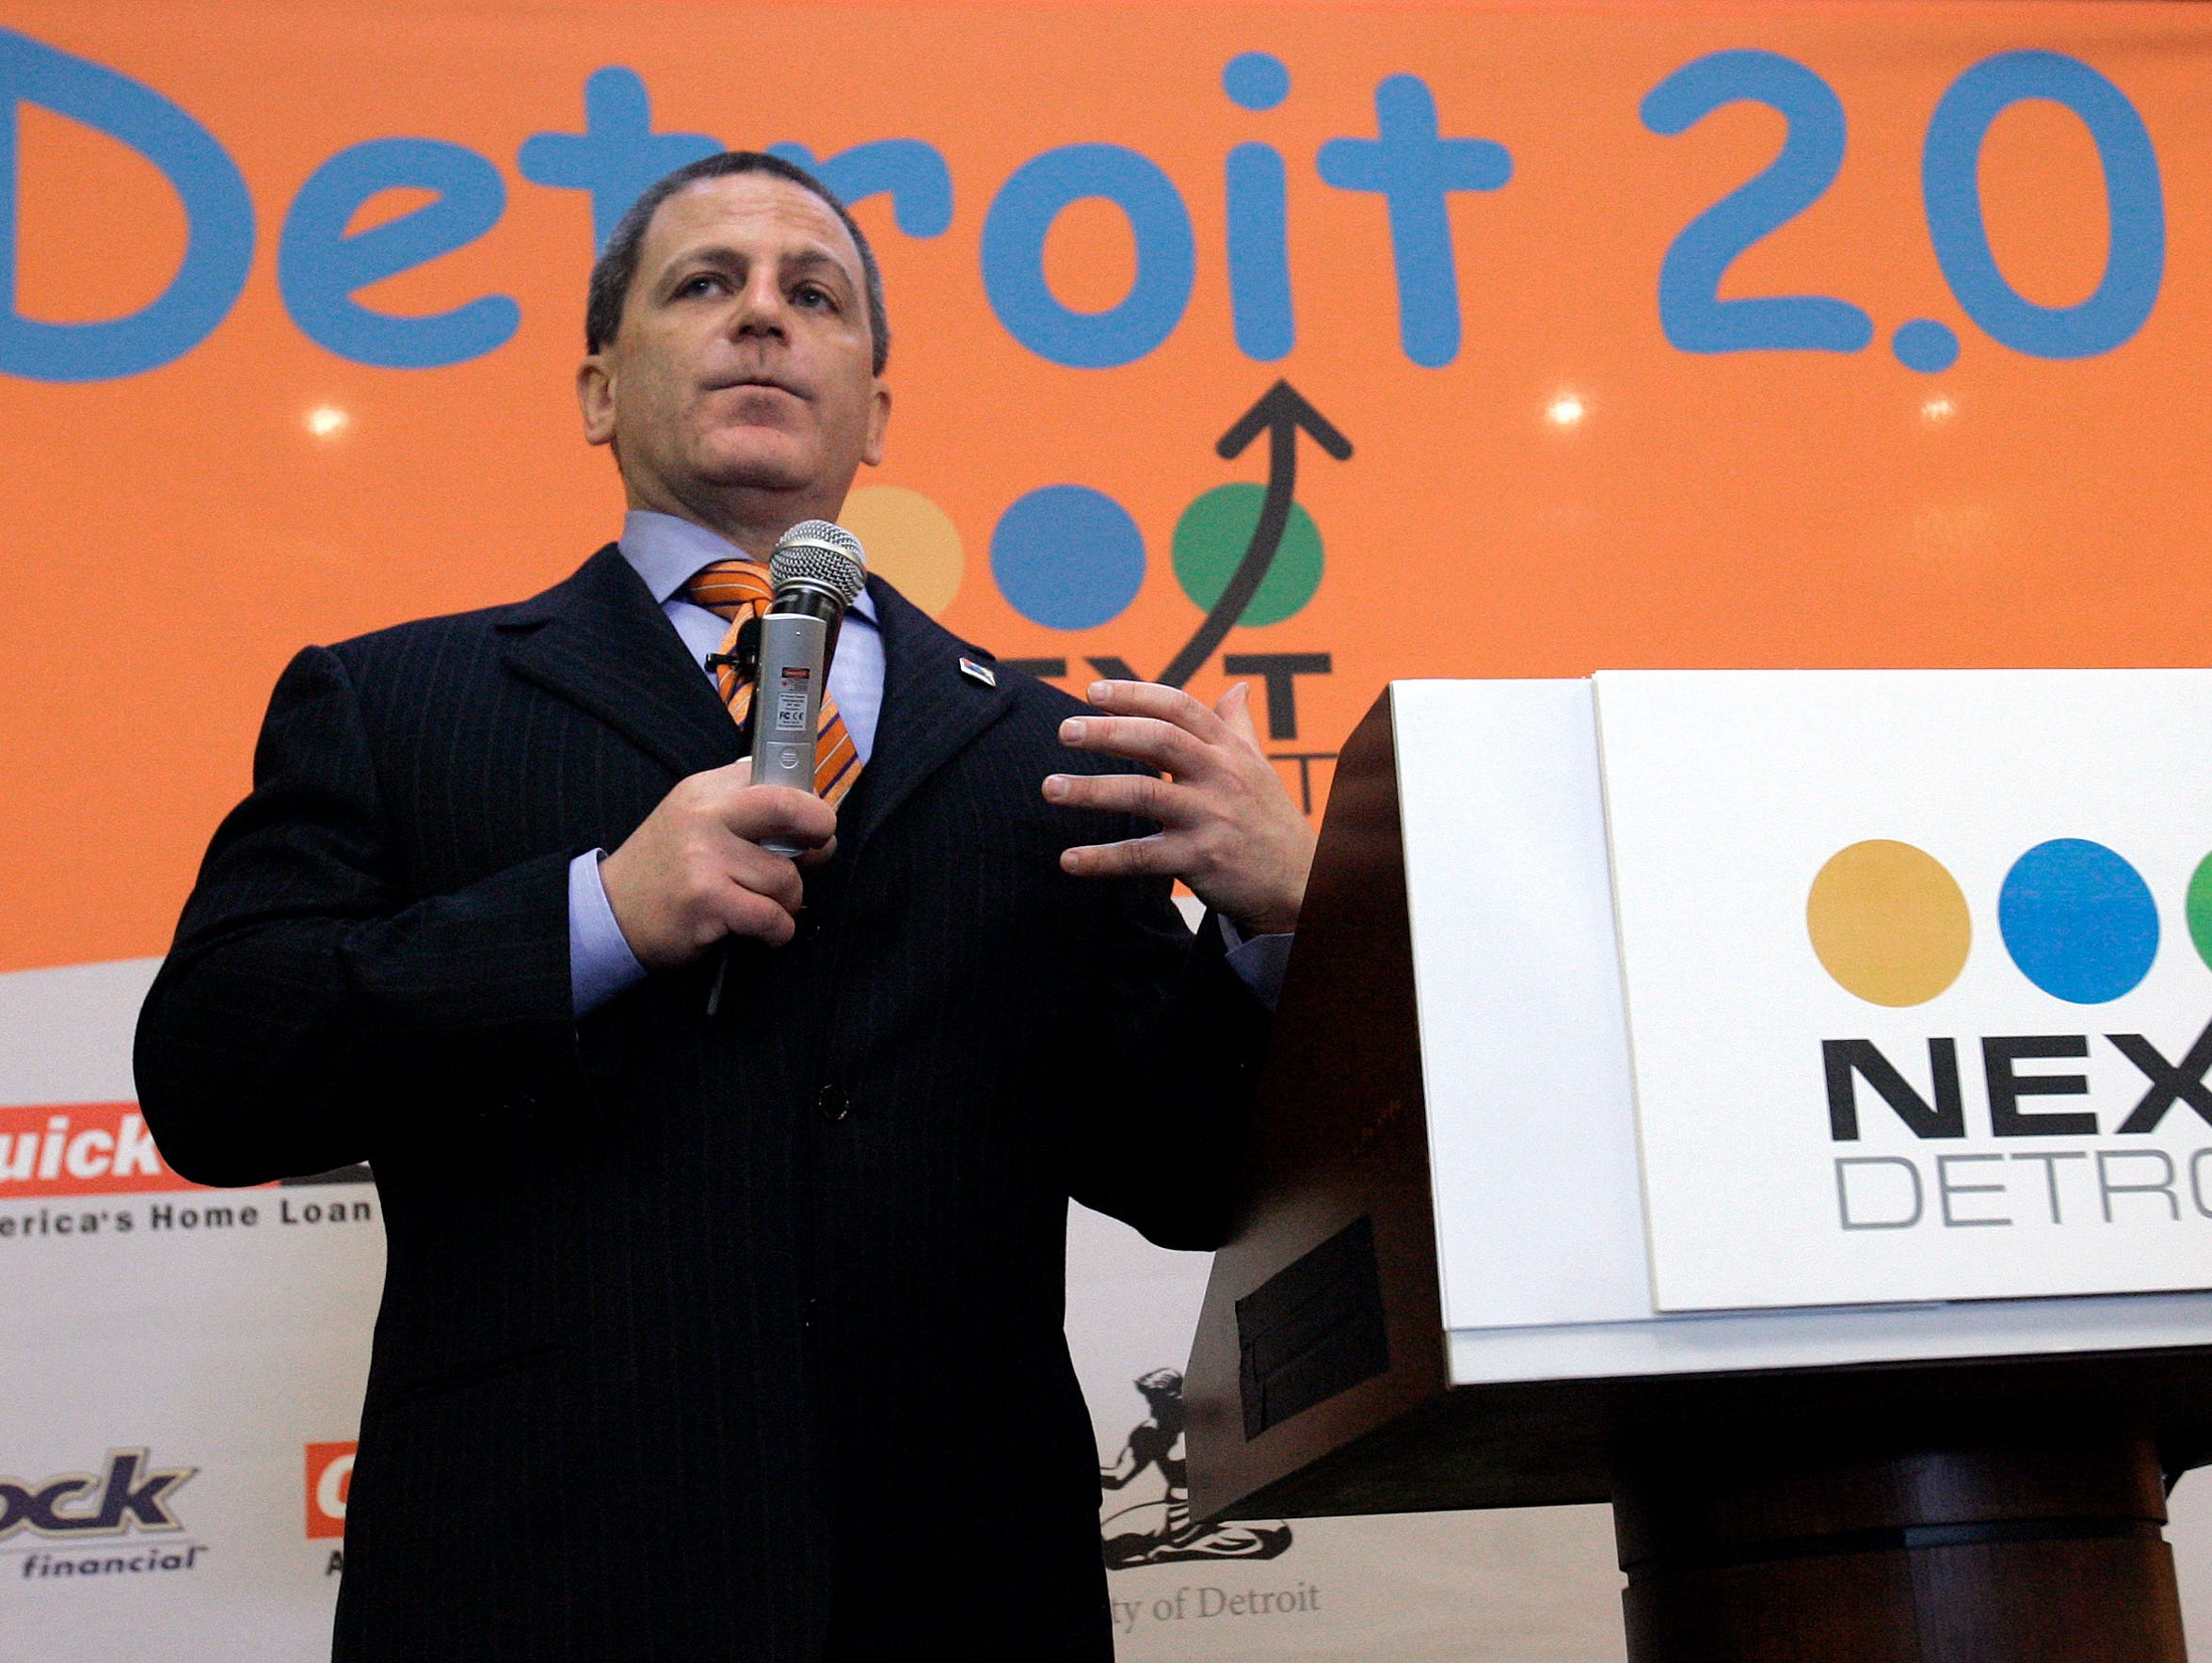 Quicken Loans founder and chairman Dan Gilbert announces